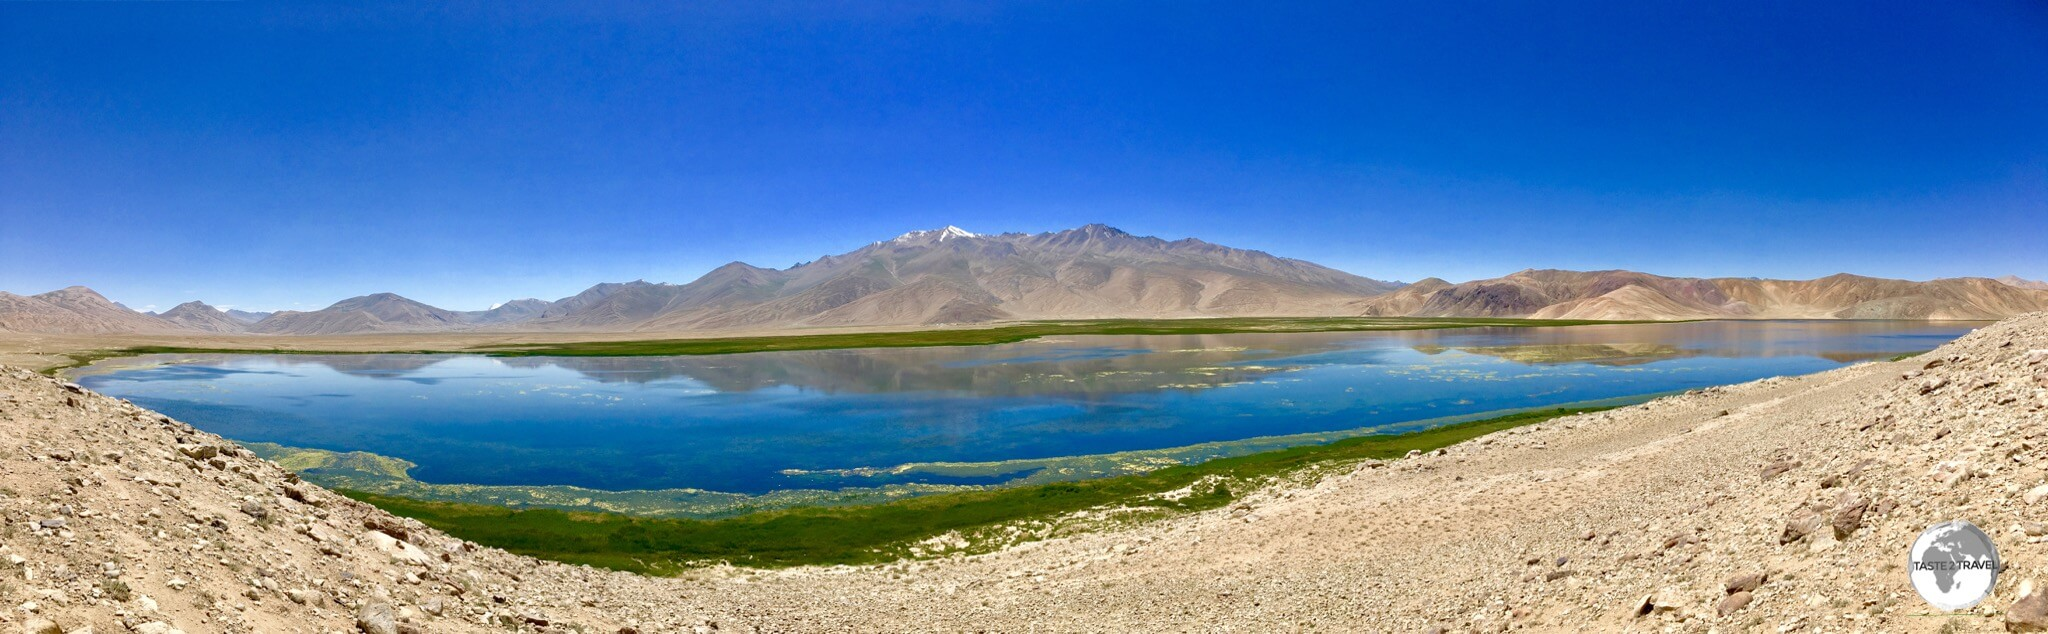 A panoramic photo of Bulunkul lake.